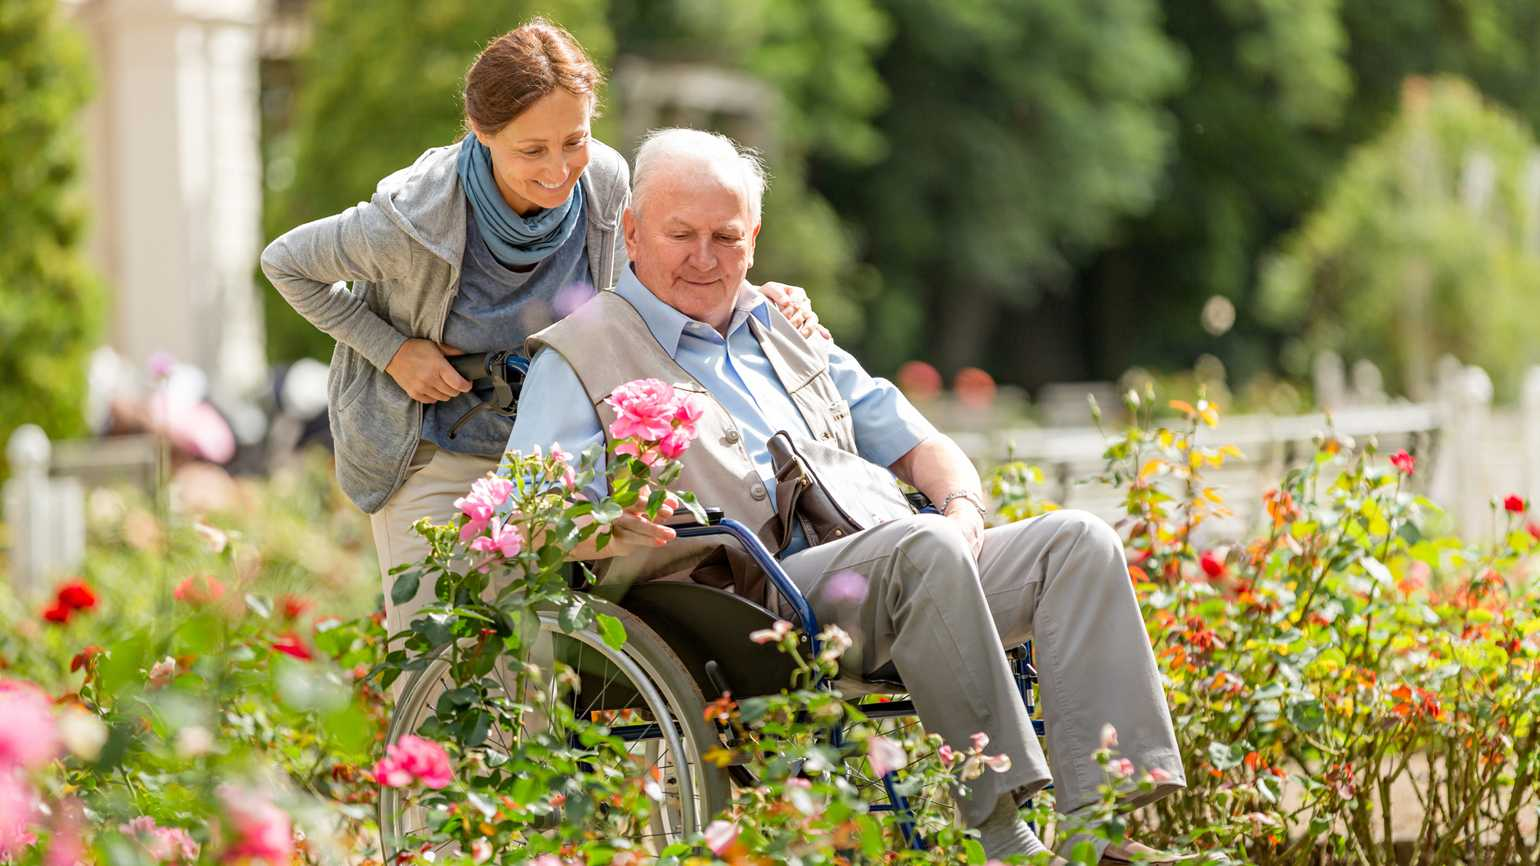 A woman taking her elderly father around the garden.